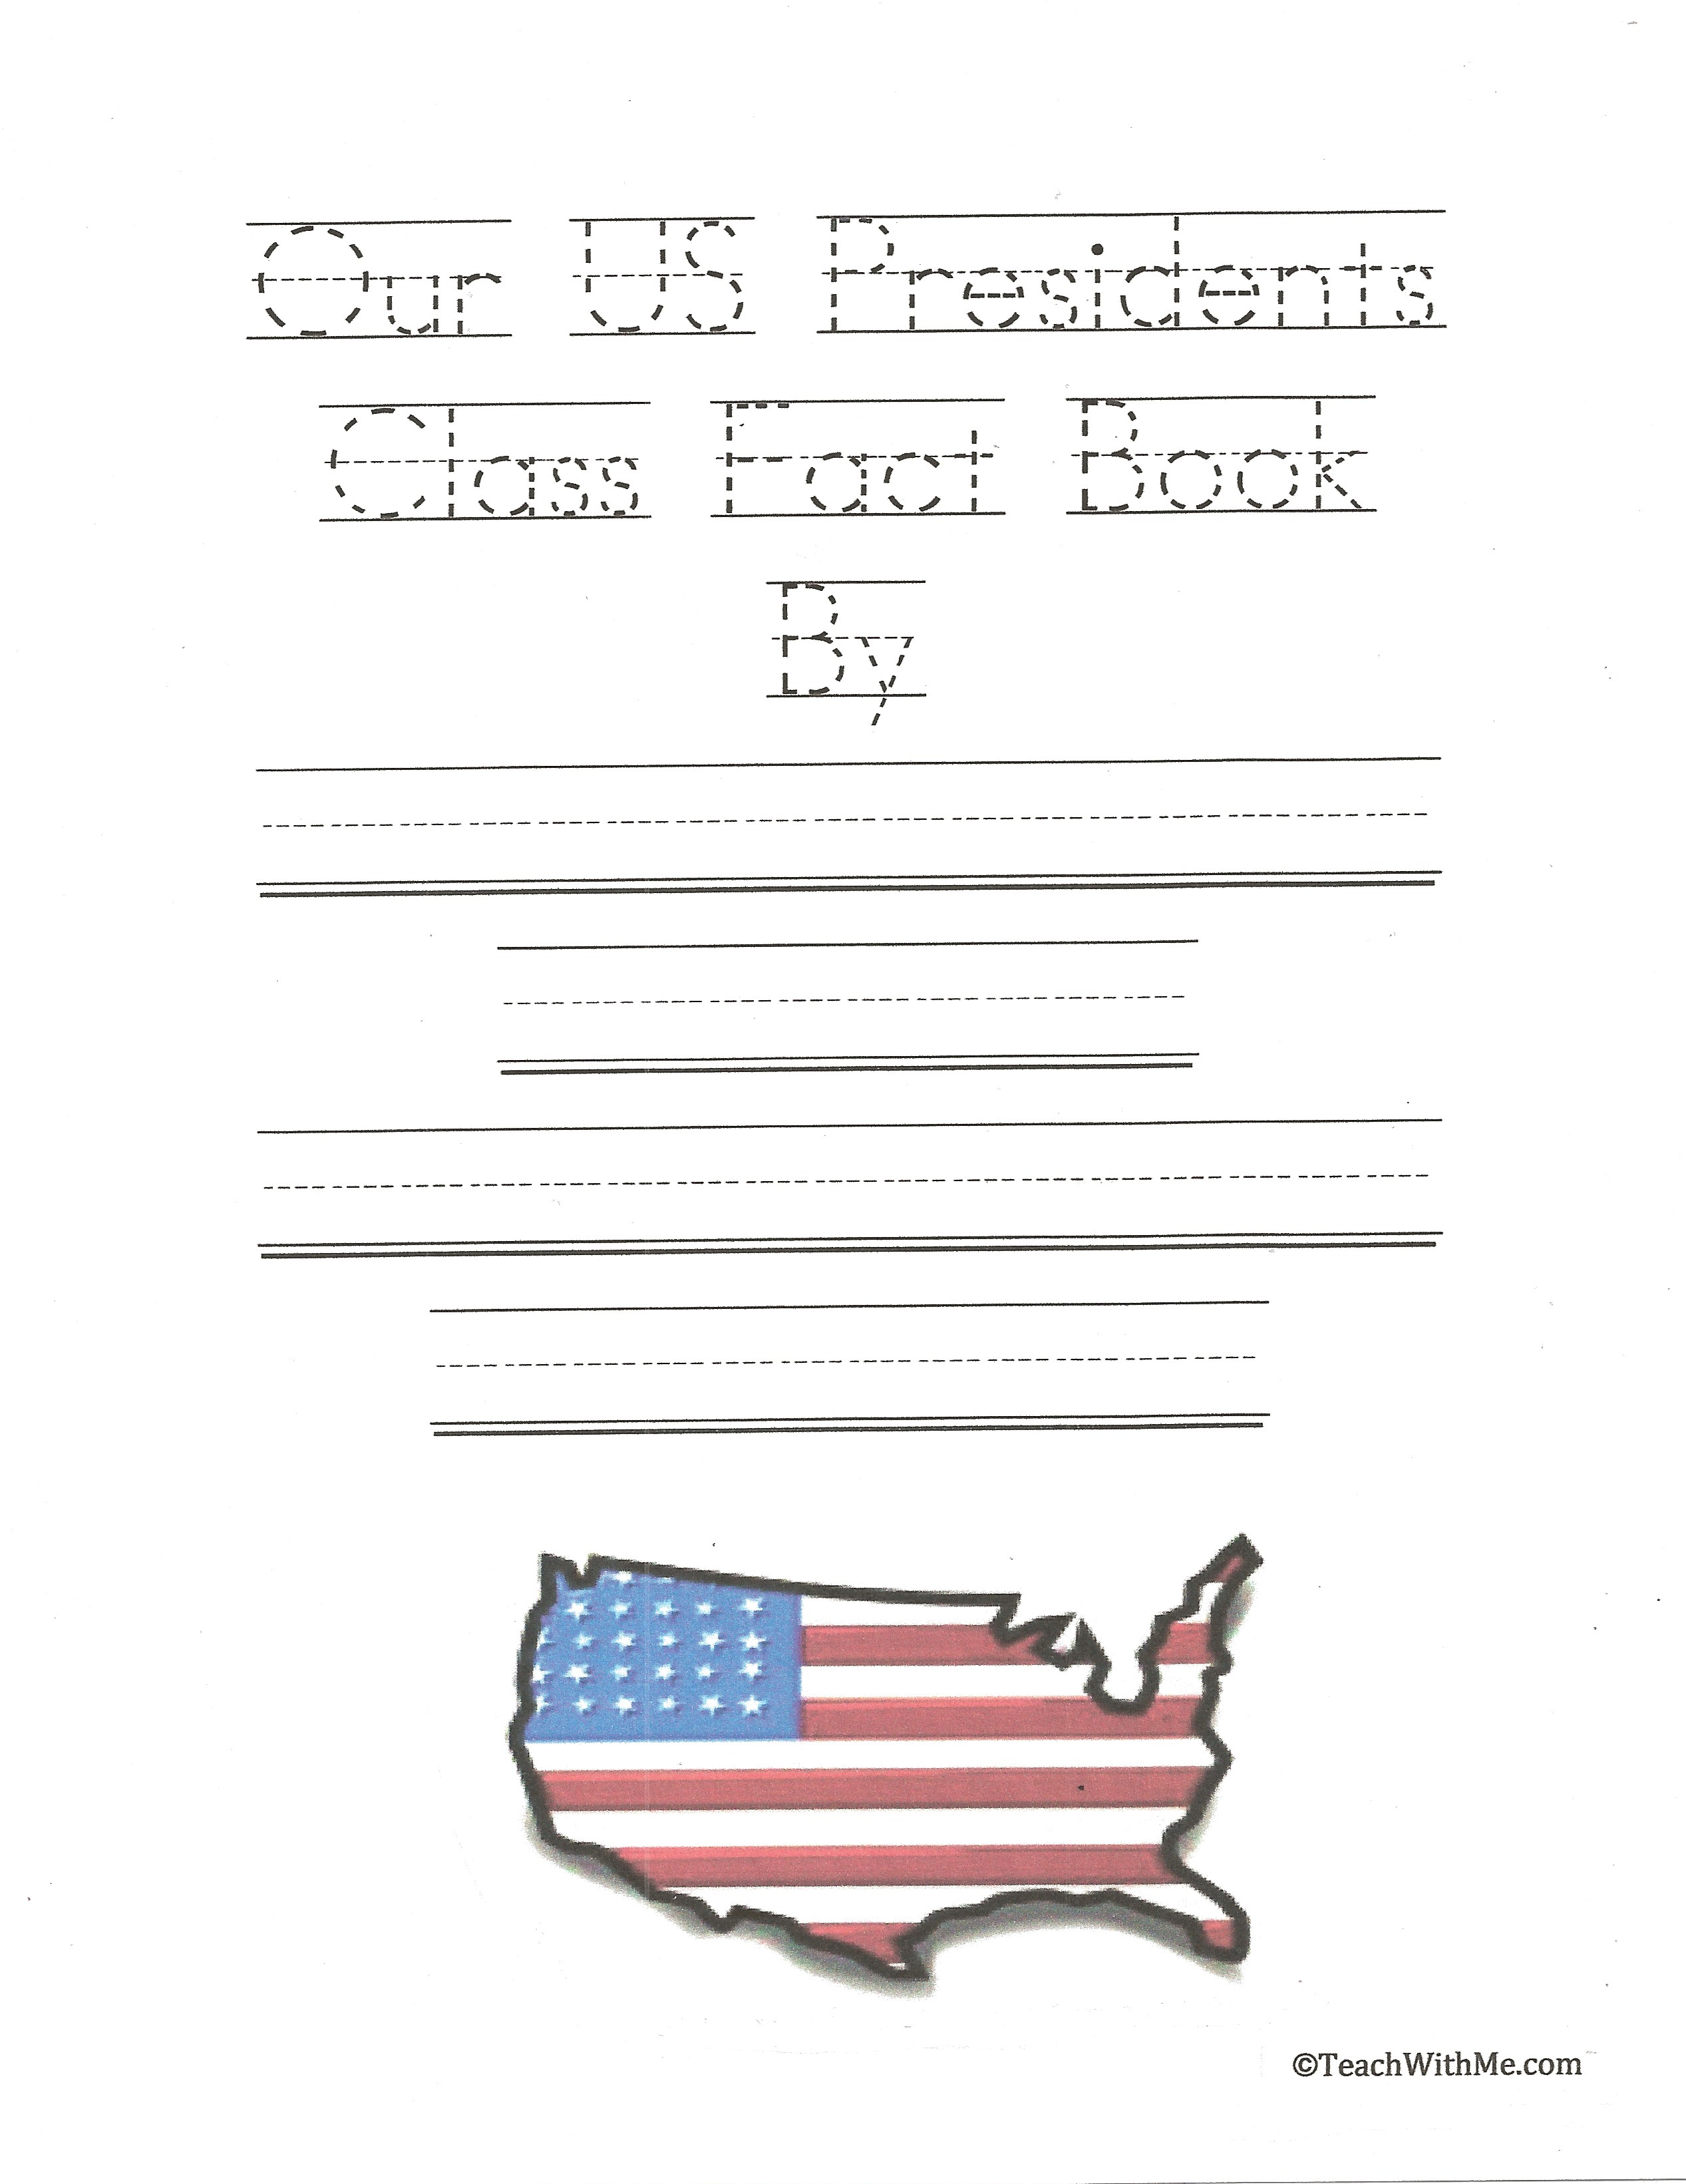 washington activities, lincoln activities, president activities, activities for presidents day, february writing prompts, writing prompts for kindergarten, writing prompts for first grade, class books, writing class books, making class books,